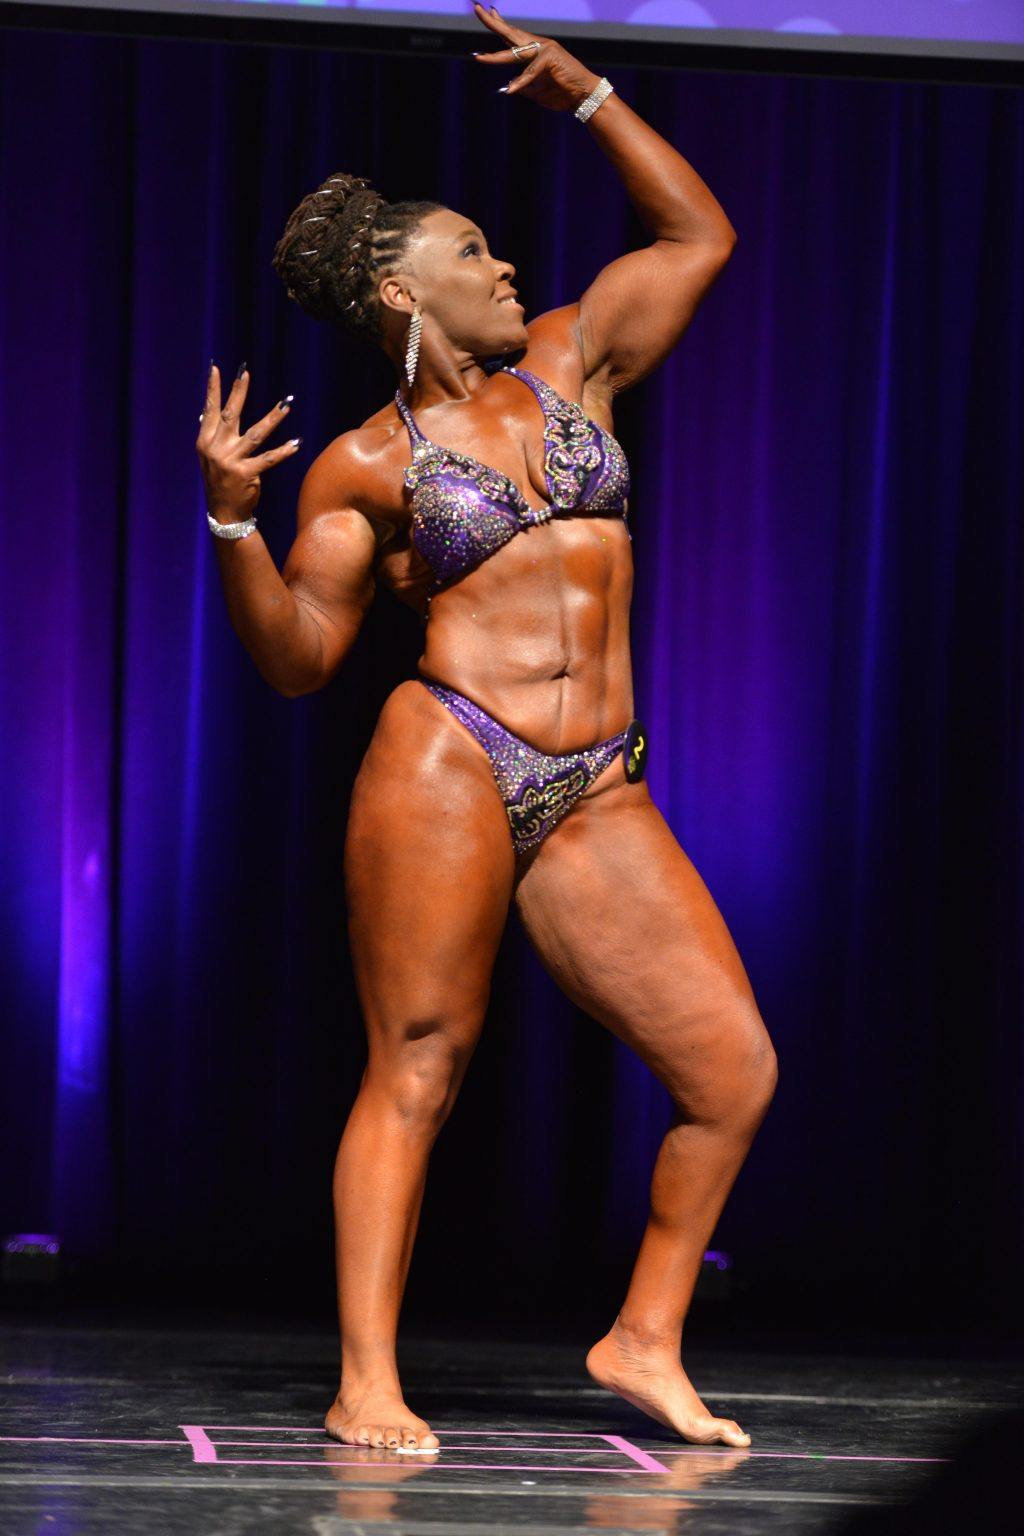 Personal Trainer Atlanta, Georgia - Keisha Love